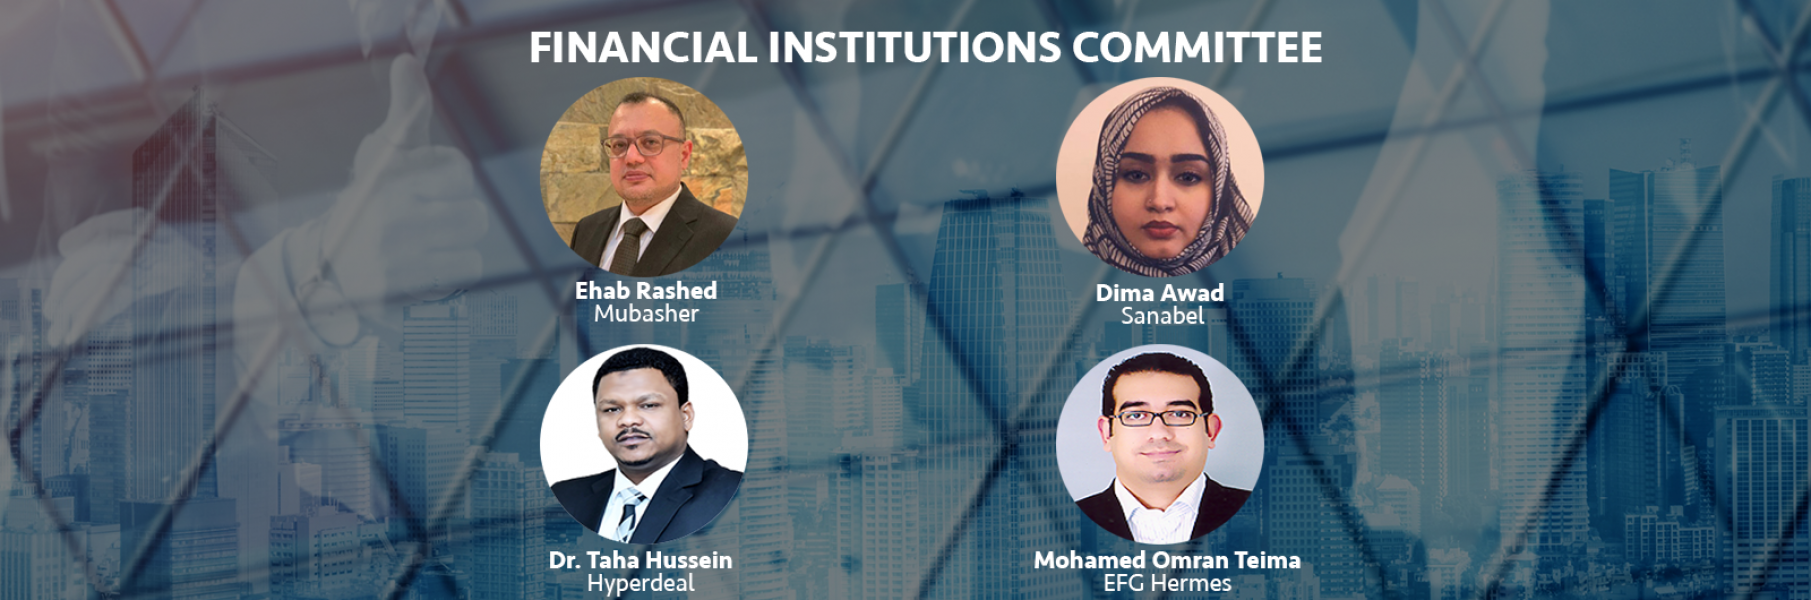 FINANCIAL INSTITUTIONS COMMITTEE